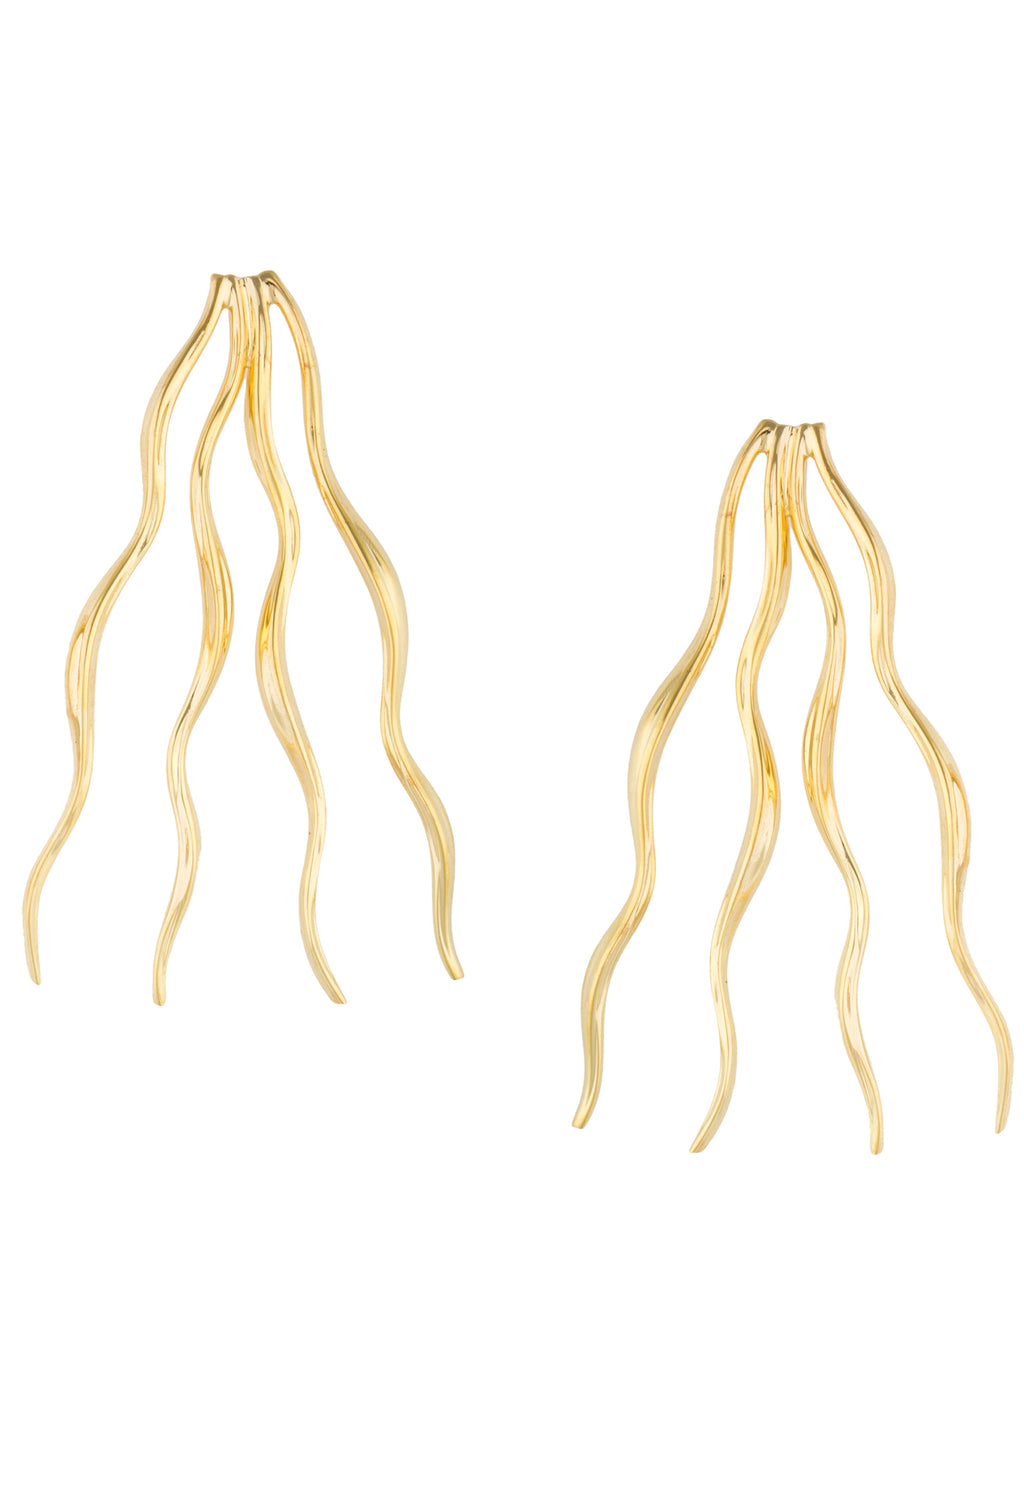 FEMININE WAVES STATEMENT EARRINGS